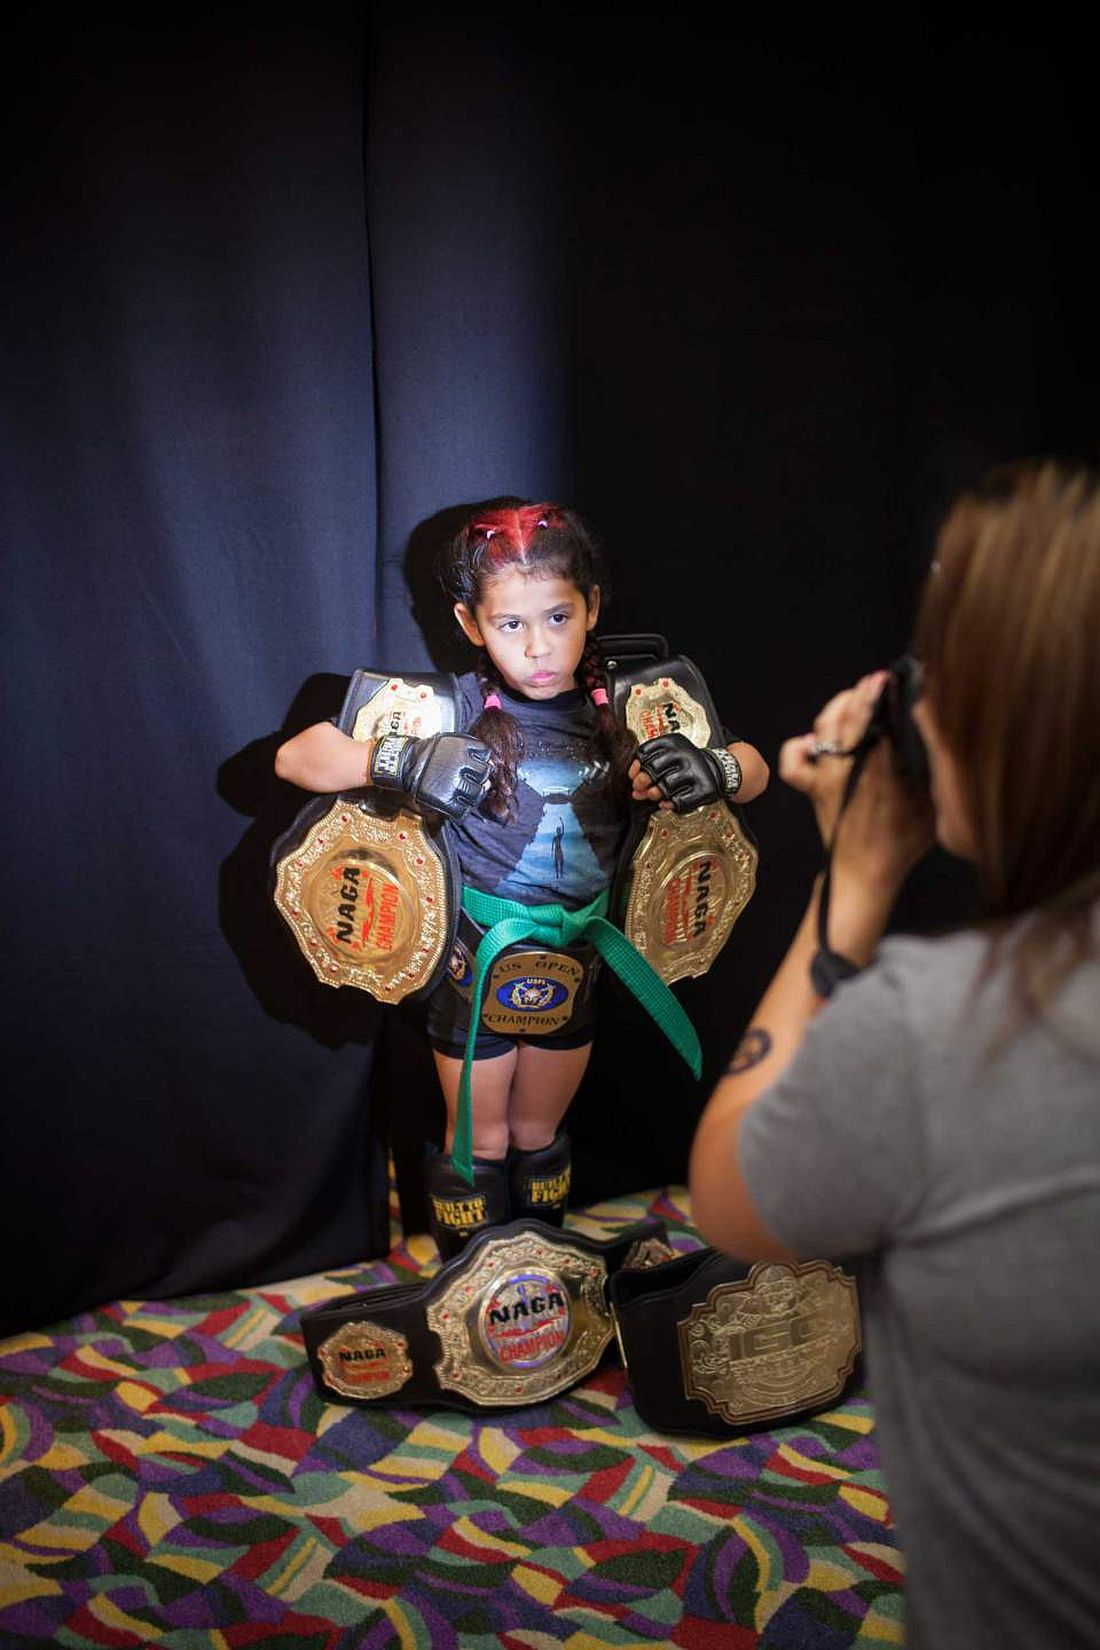 "Regina ""Black Widow"" Awana, 7, with her Championship belts, posing for her sponsor at United States Fight League(USFL) All-star Pankration show at Blue Water Casino in Parker, Arizona on 25th of October 2013. Photo: Miikka Pirinen"